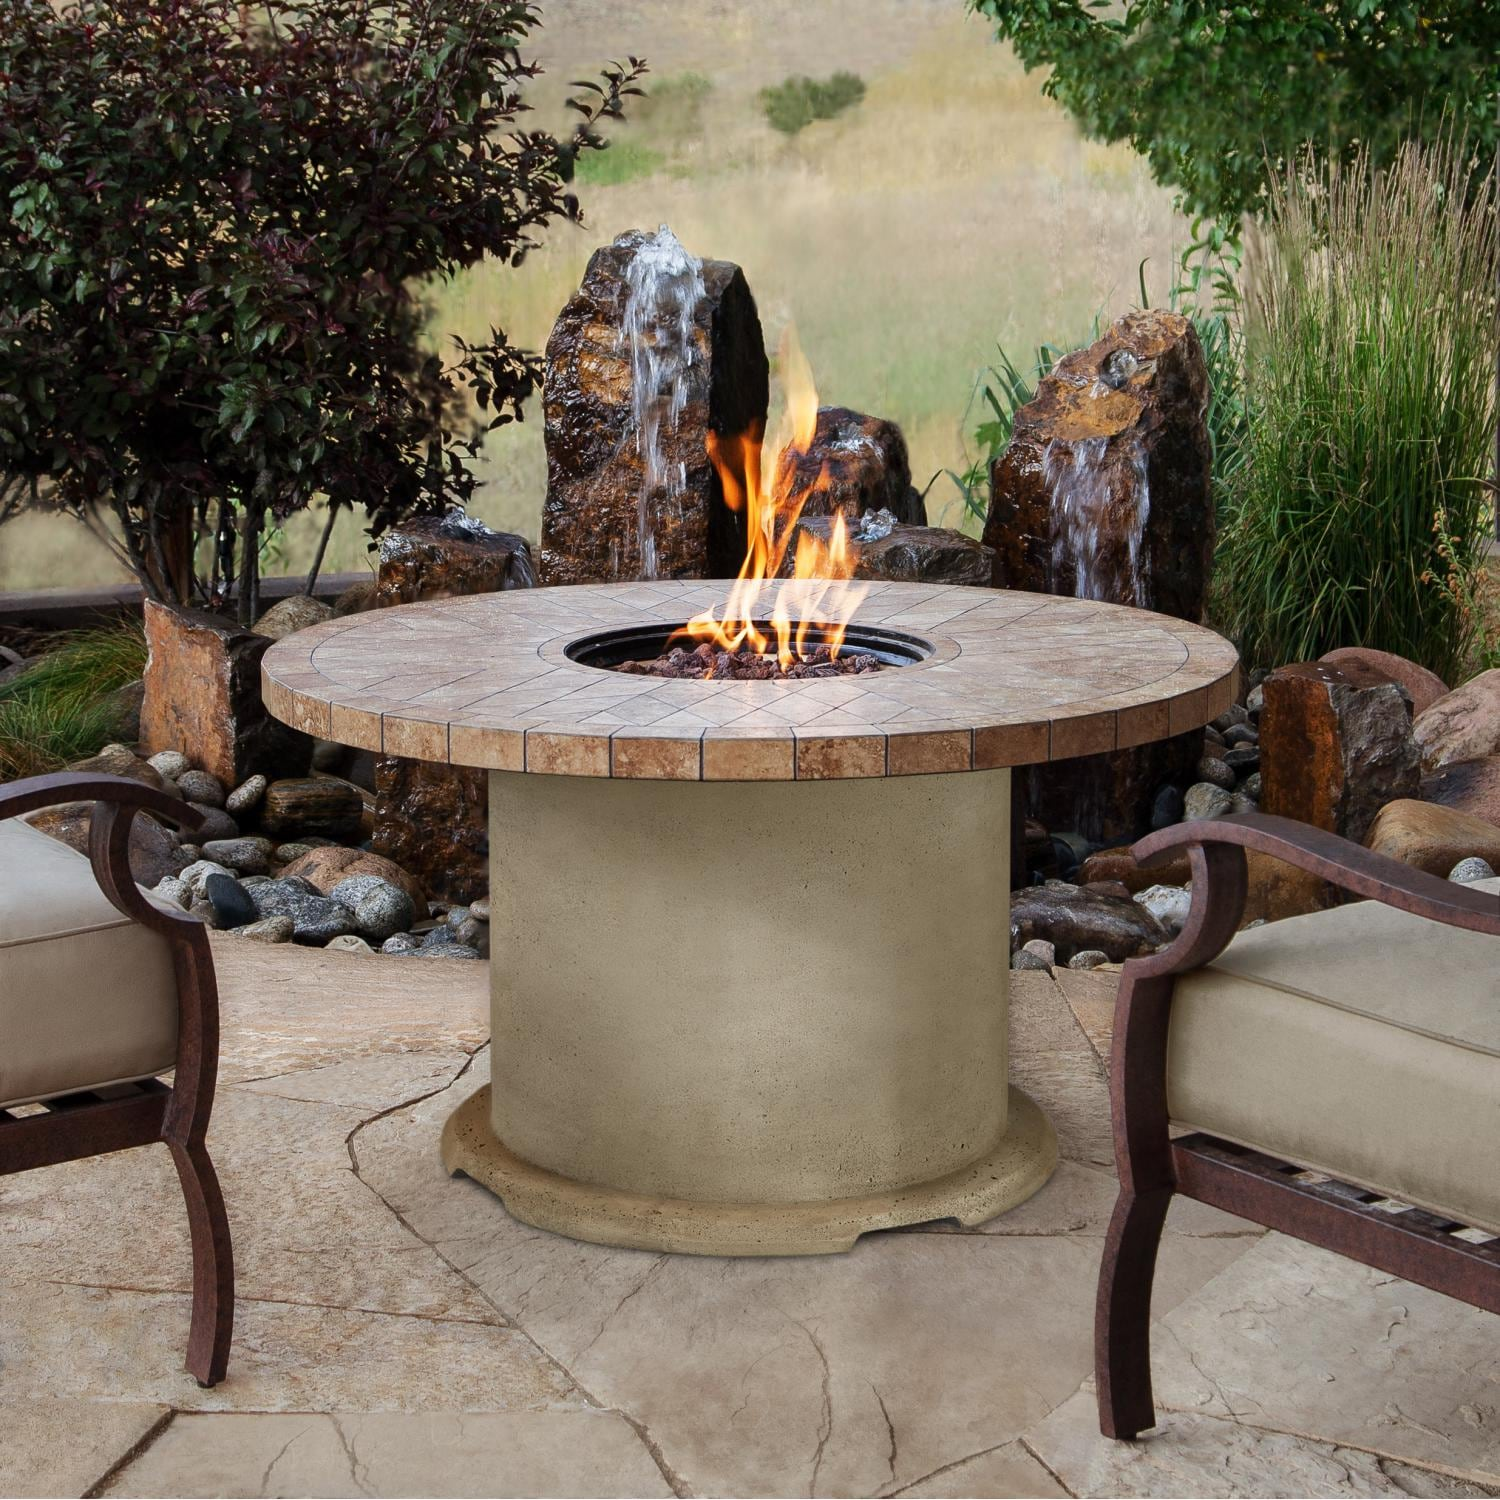 Real Flame Ogden 41 Inch Round Propane Gas Fire Table   Sand   Lifestyle